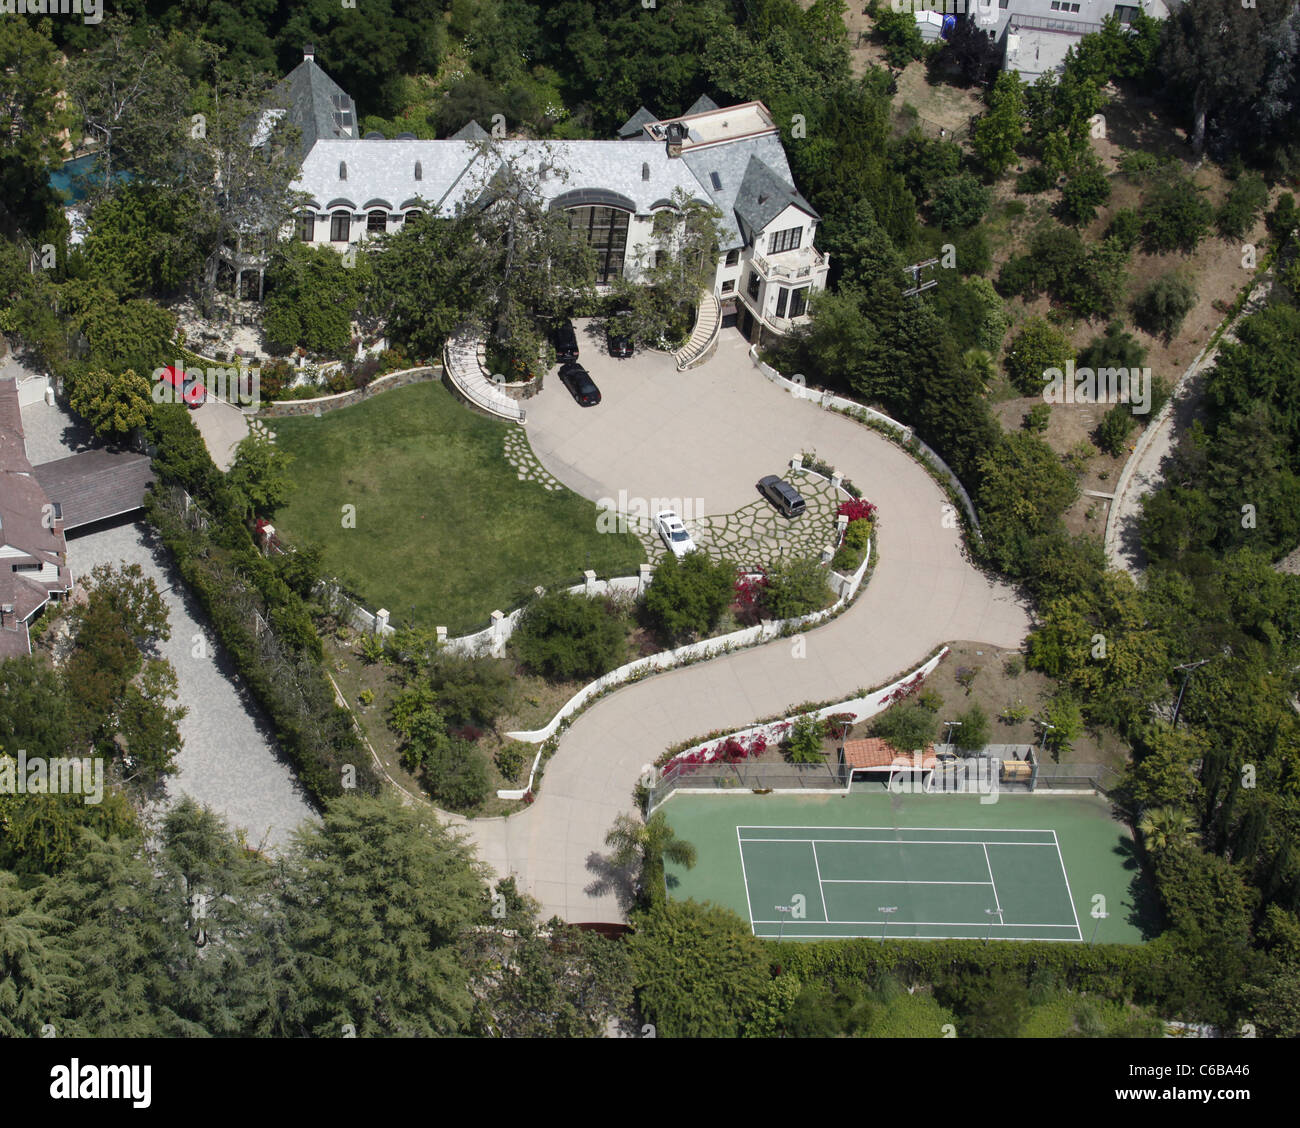 Aerial view of the house Gene Simmons of KISS lives in